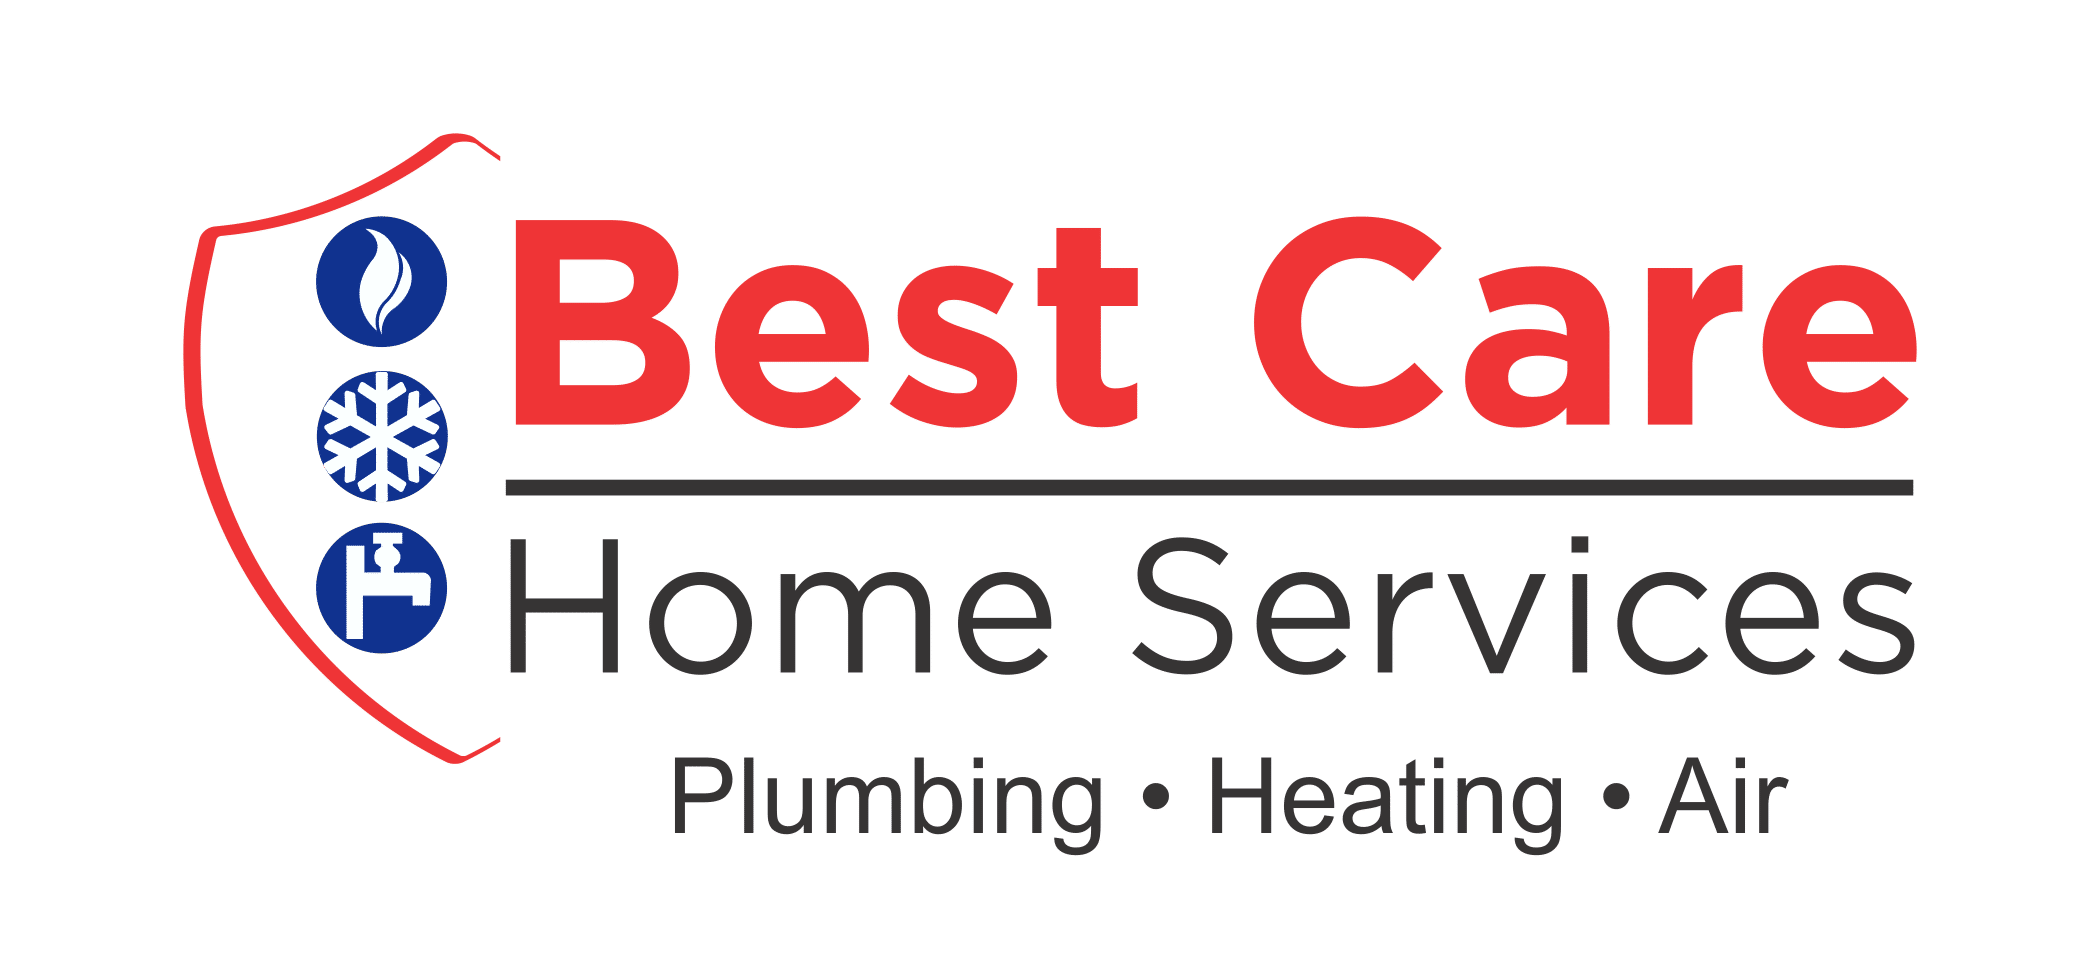 Best Care Home Services Alabama